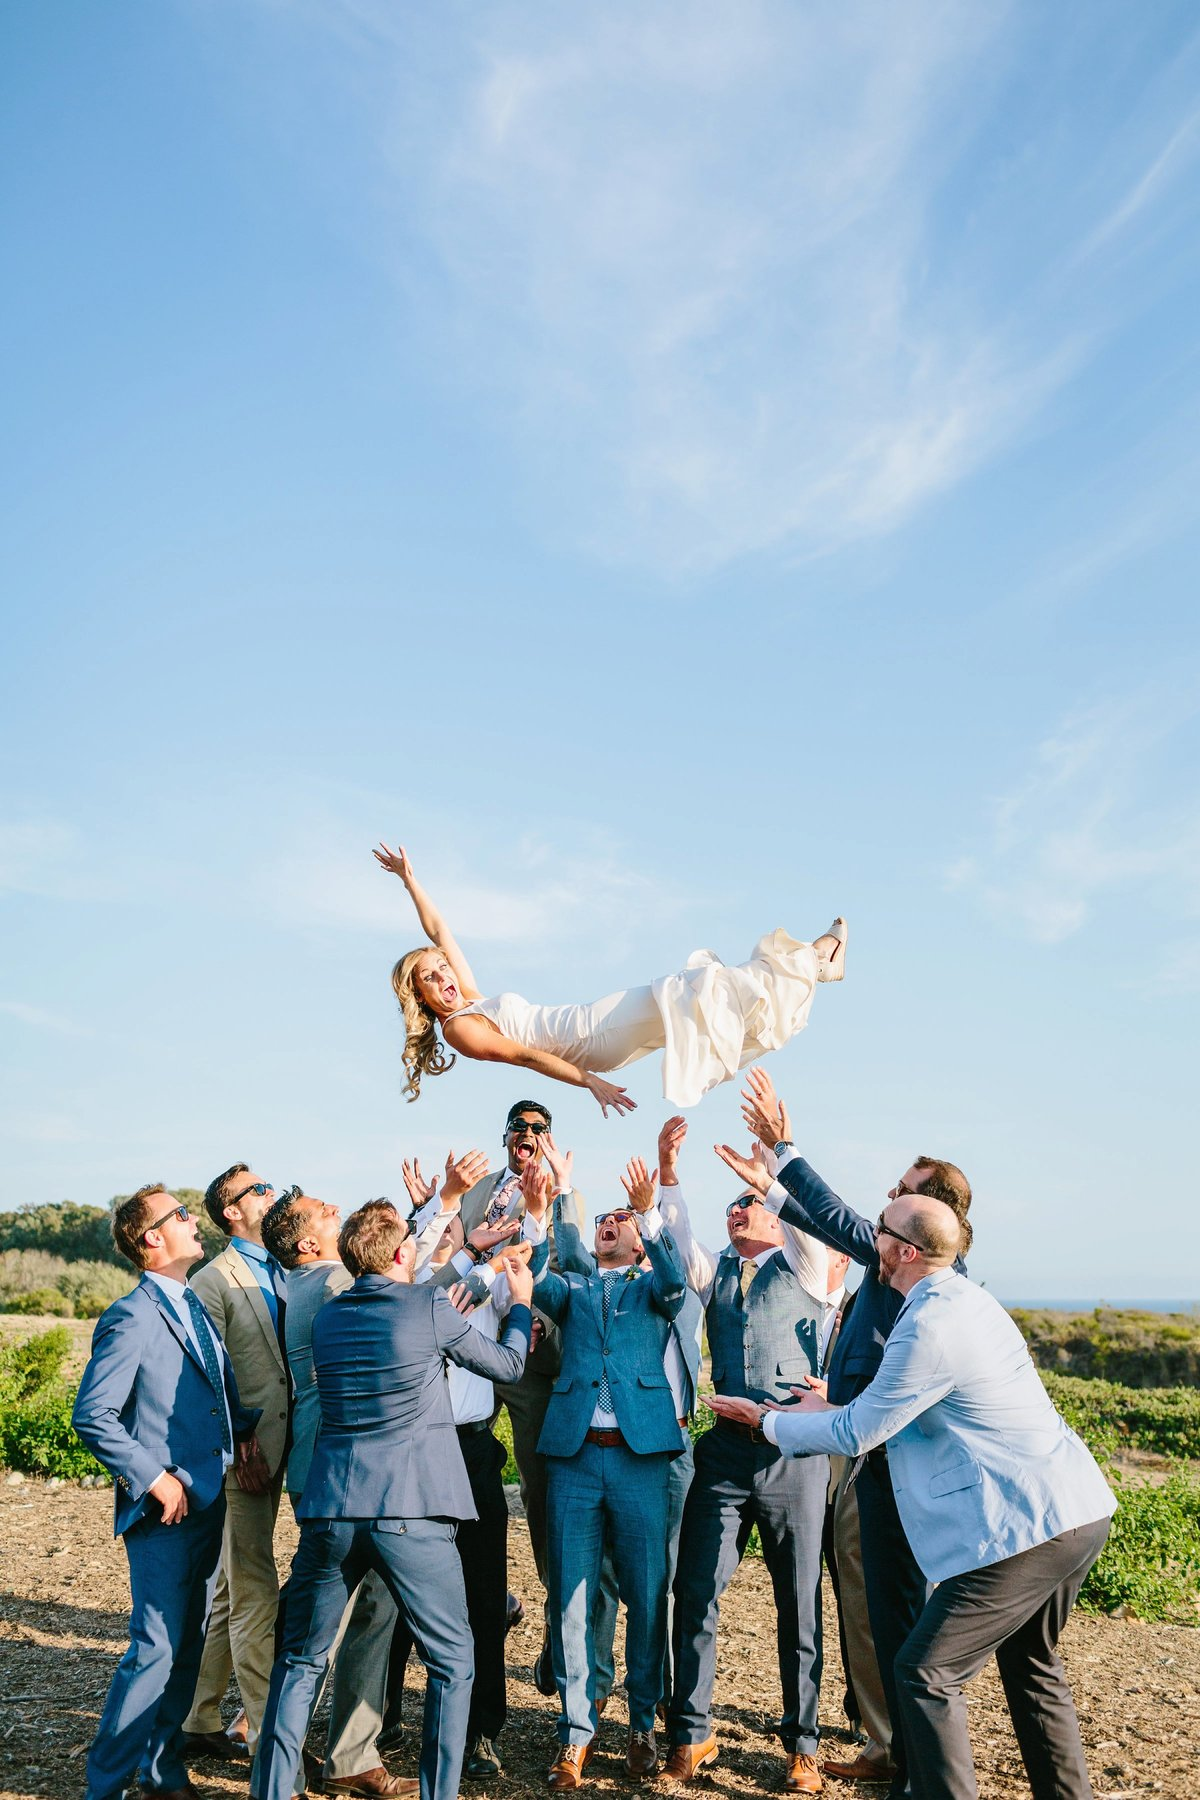 Wedding Photos-Jodee Debes Photography-004